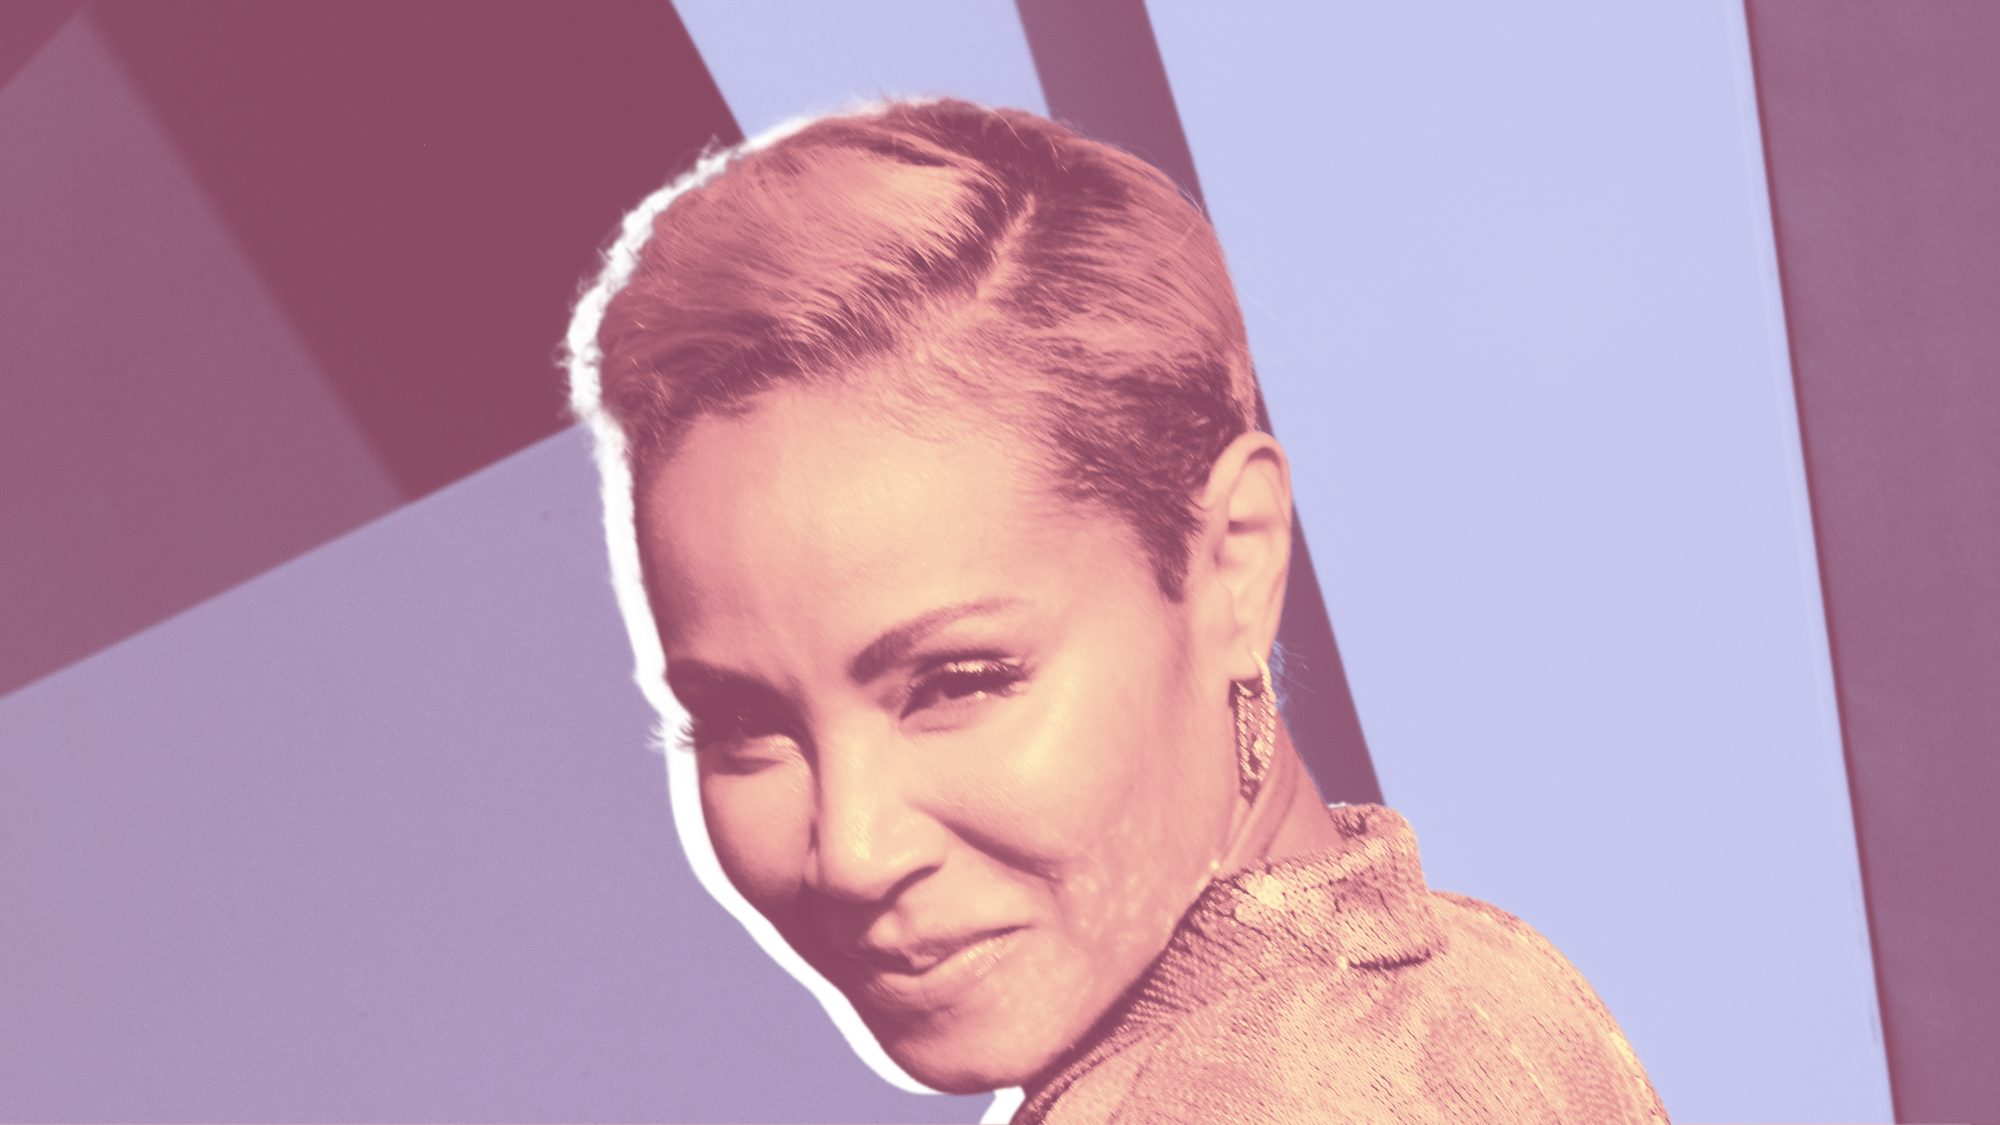 jada-pinkett-smith celebrity polyamorous woman health wellbeing sex love relationship